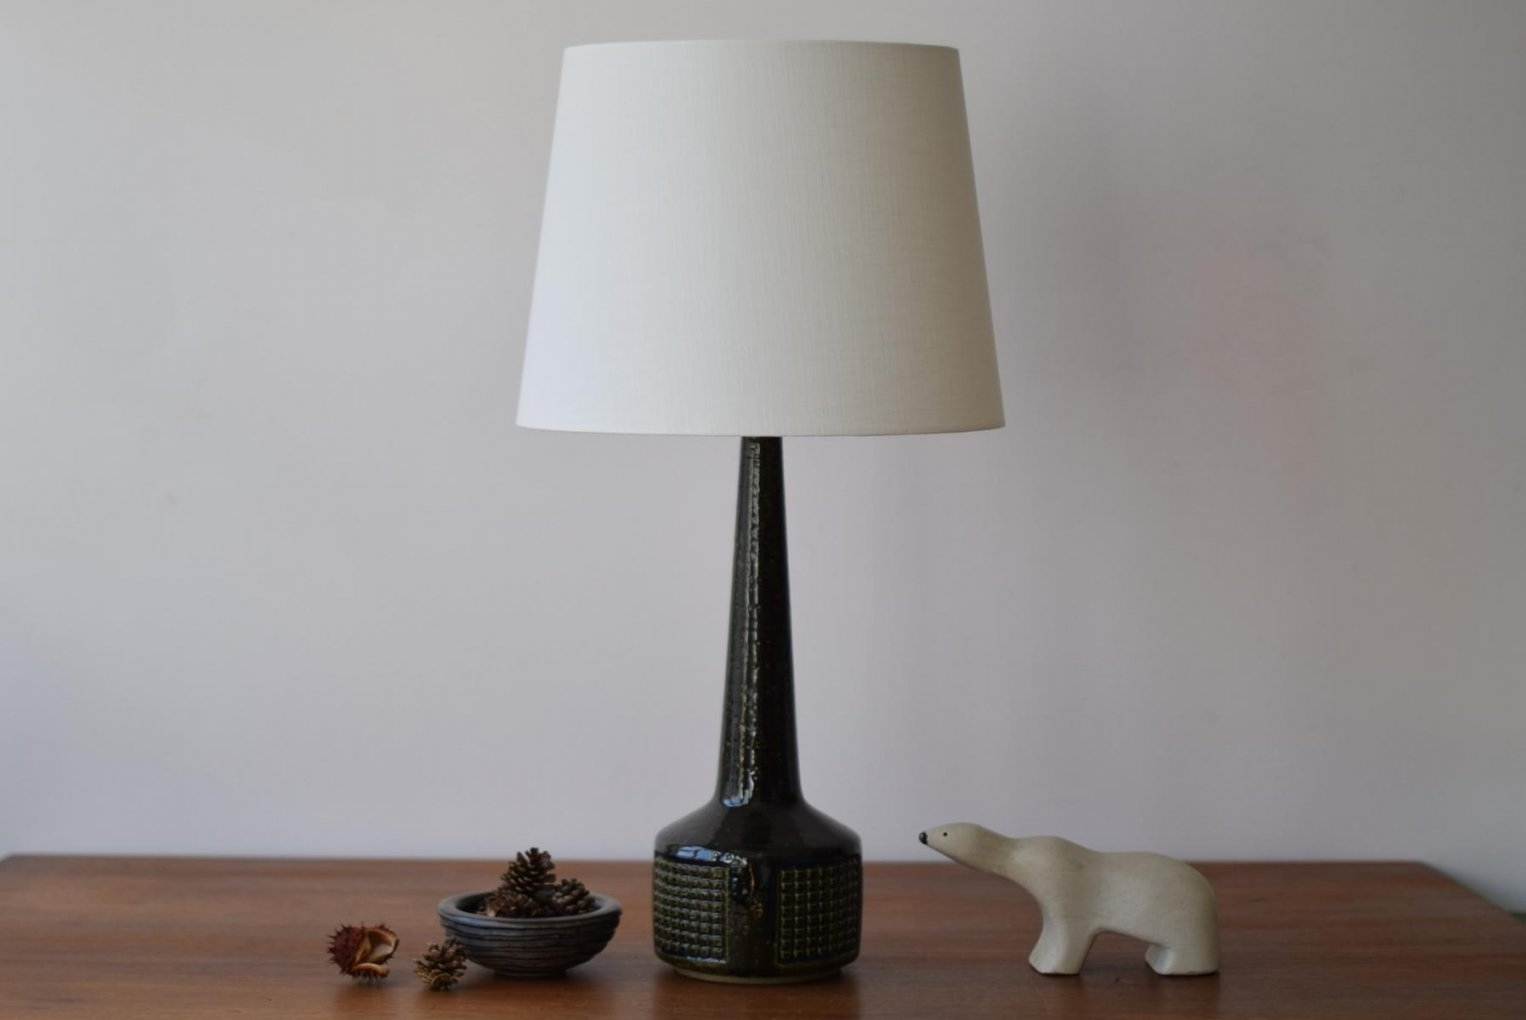 Western Floor Lamps : Probably Fantastic Free Floor Table Lamp Inside Western Table Lamps For Living Room (#10 of 15)